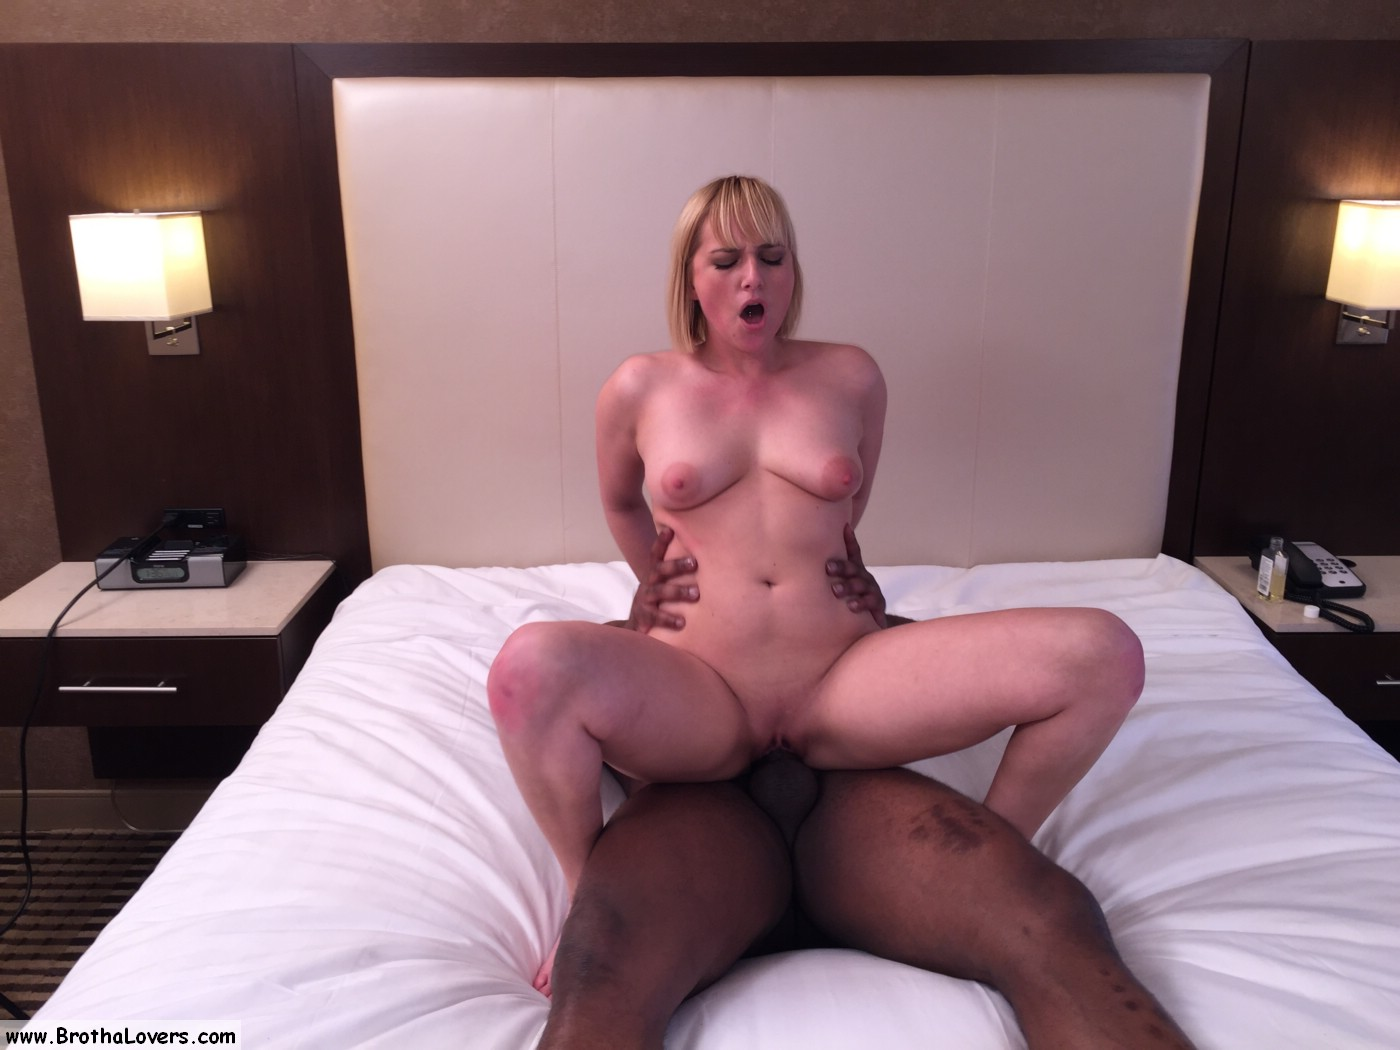 Cuckold wife fucks bbc she met online - 1 part 4